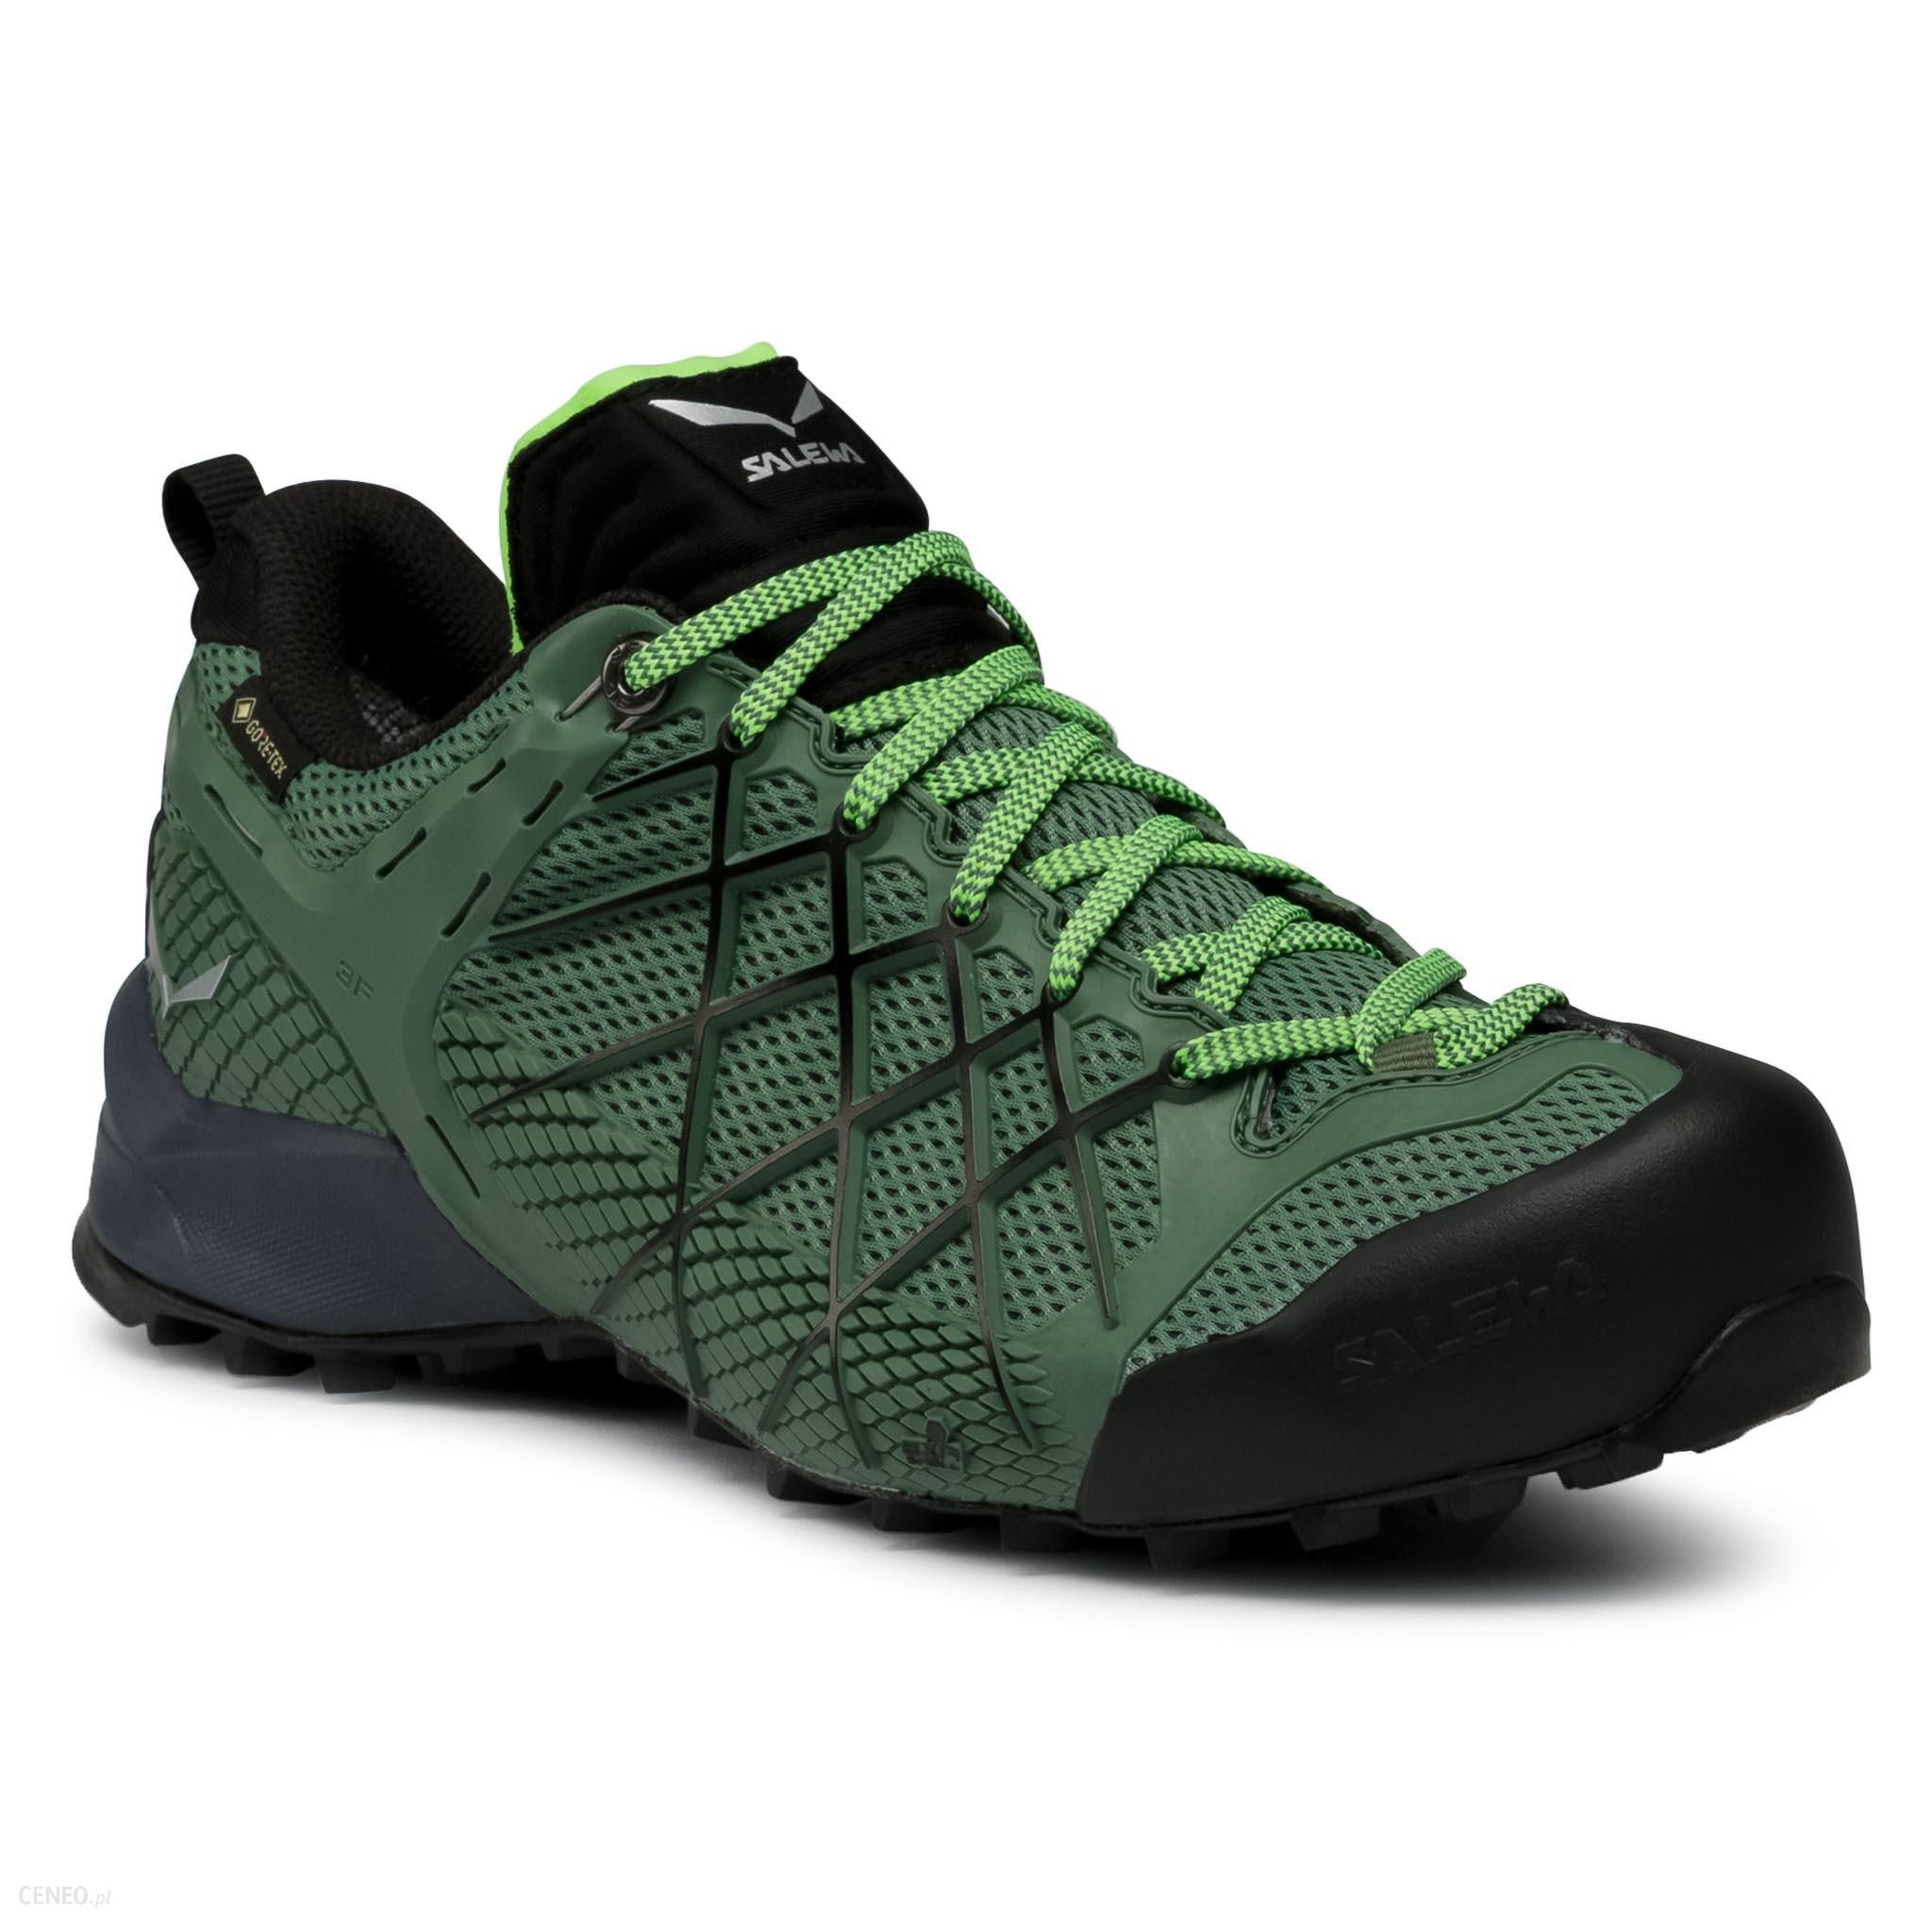 Salewa Ms Wildfire Gtx Gore-Tex 63487 5949 Myrtle Fluo Green post thumbnail image